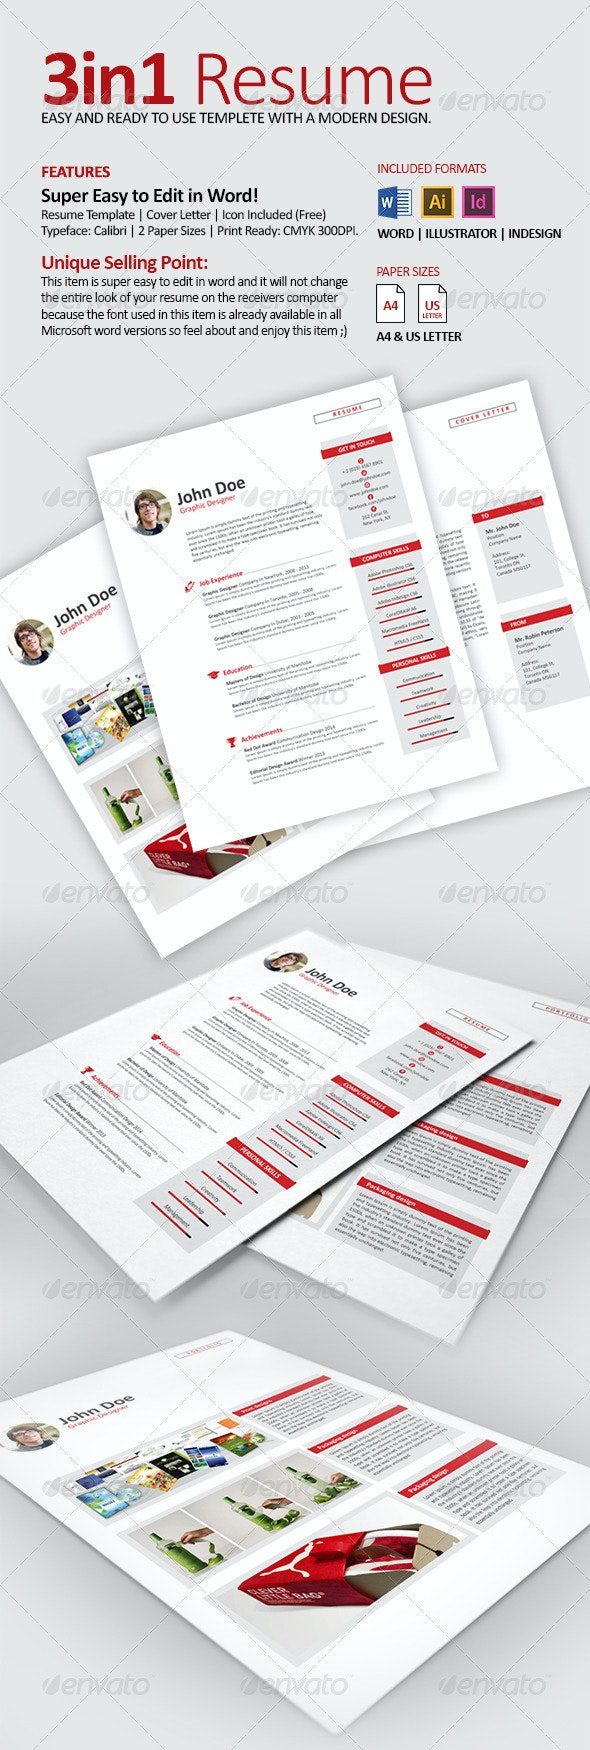 Resume CV with Word Files - Resumes Stationery